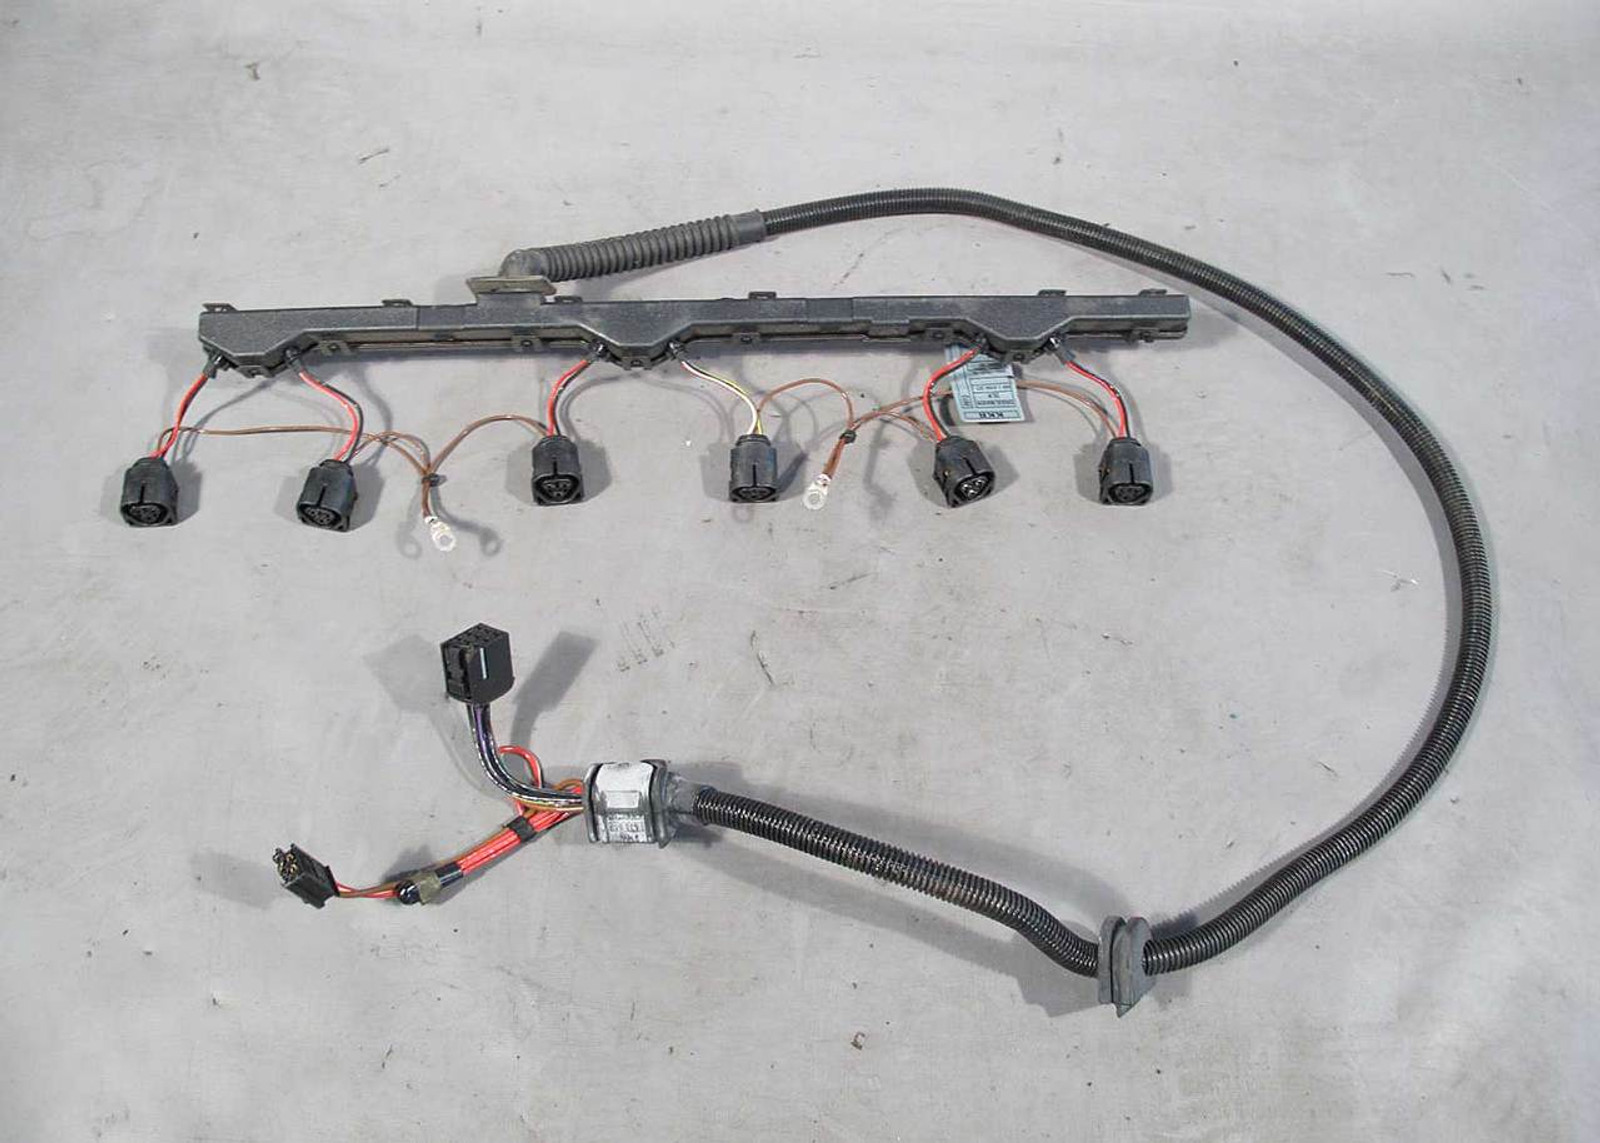 2004 Bmw X3 Wiring Harness - wiring diagram load-cover -  load-cover.pennyapp.it | 2004 Bmw X3 Wiring Harness |  | PennyApp